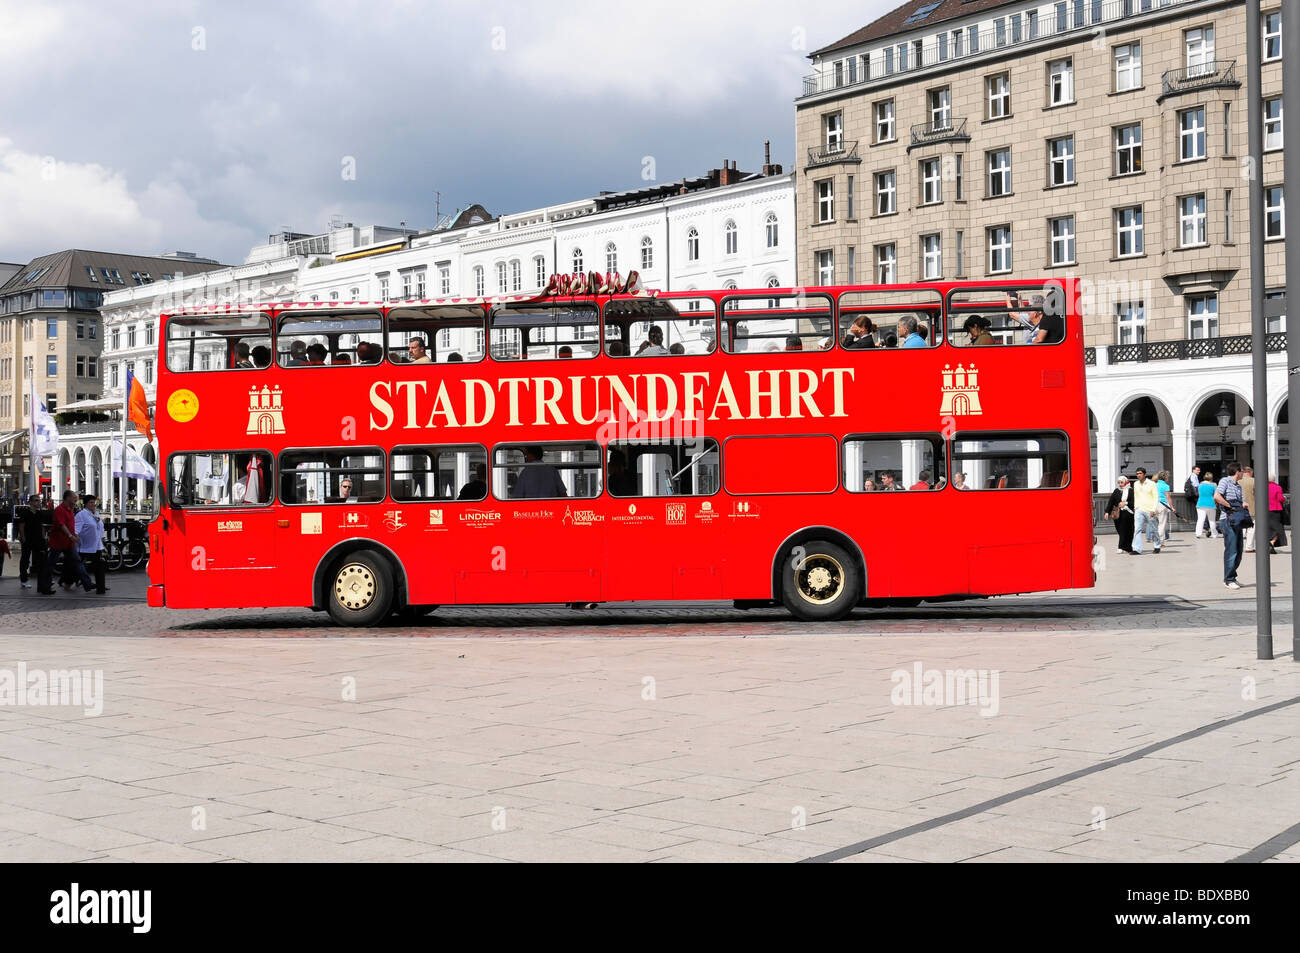 Bus, sightseeing tour, Hanseatic City of Hamburg, Germany, Europe - Stock Image